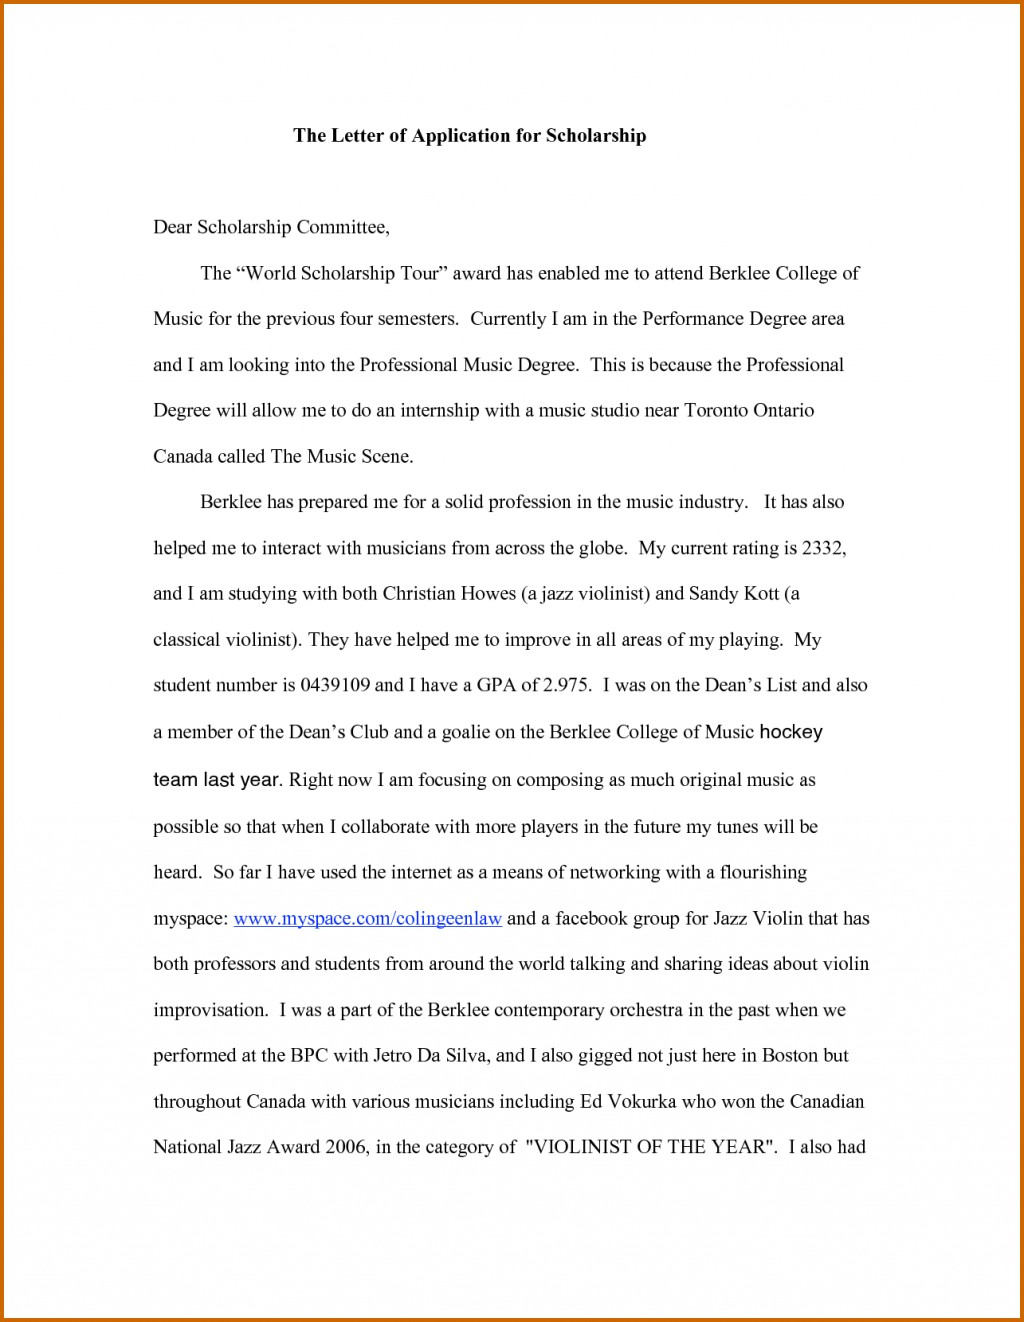 007 Essay Example How To Write Application For Scholarship Frightening Sample Nursing Engineering Pdf Large